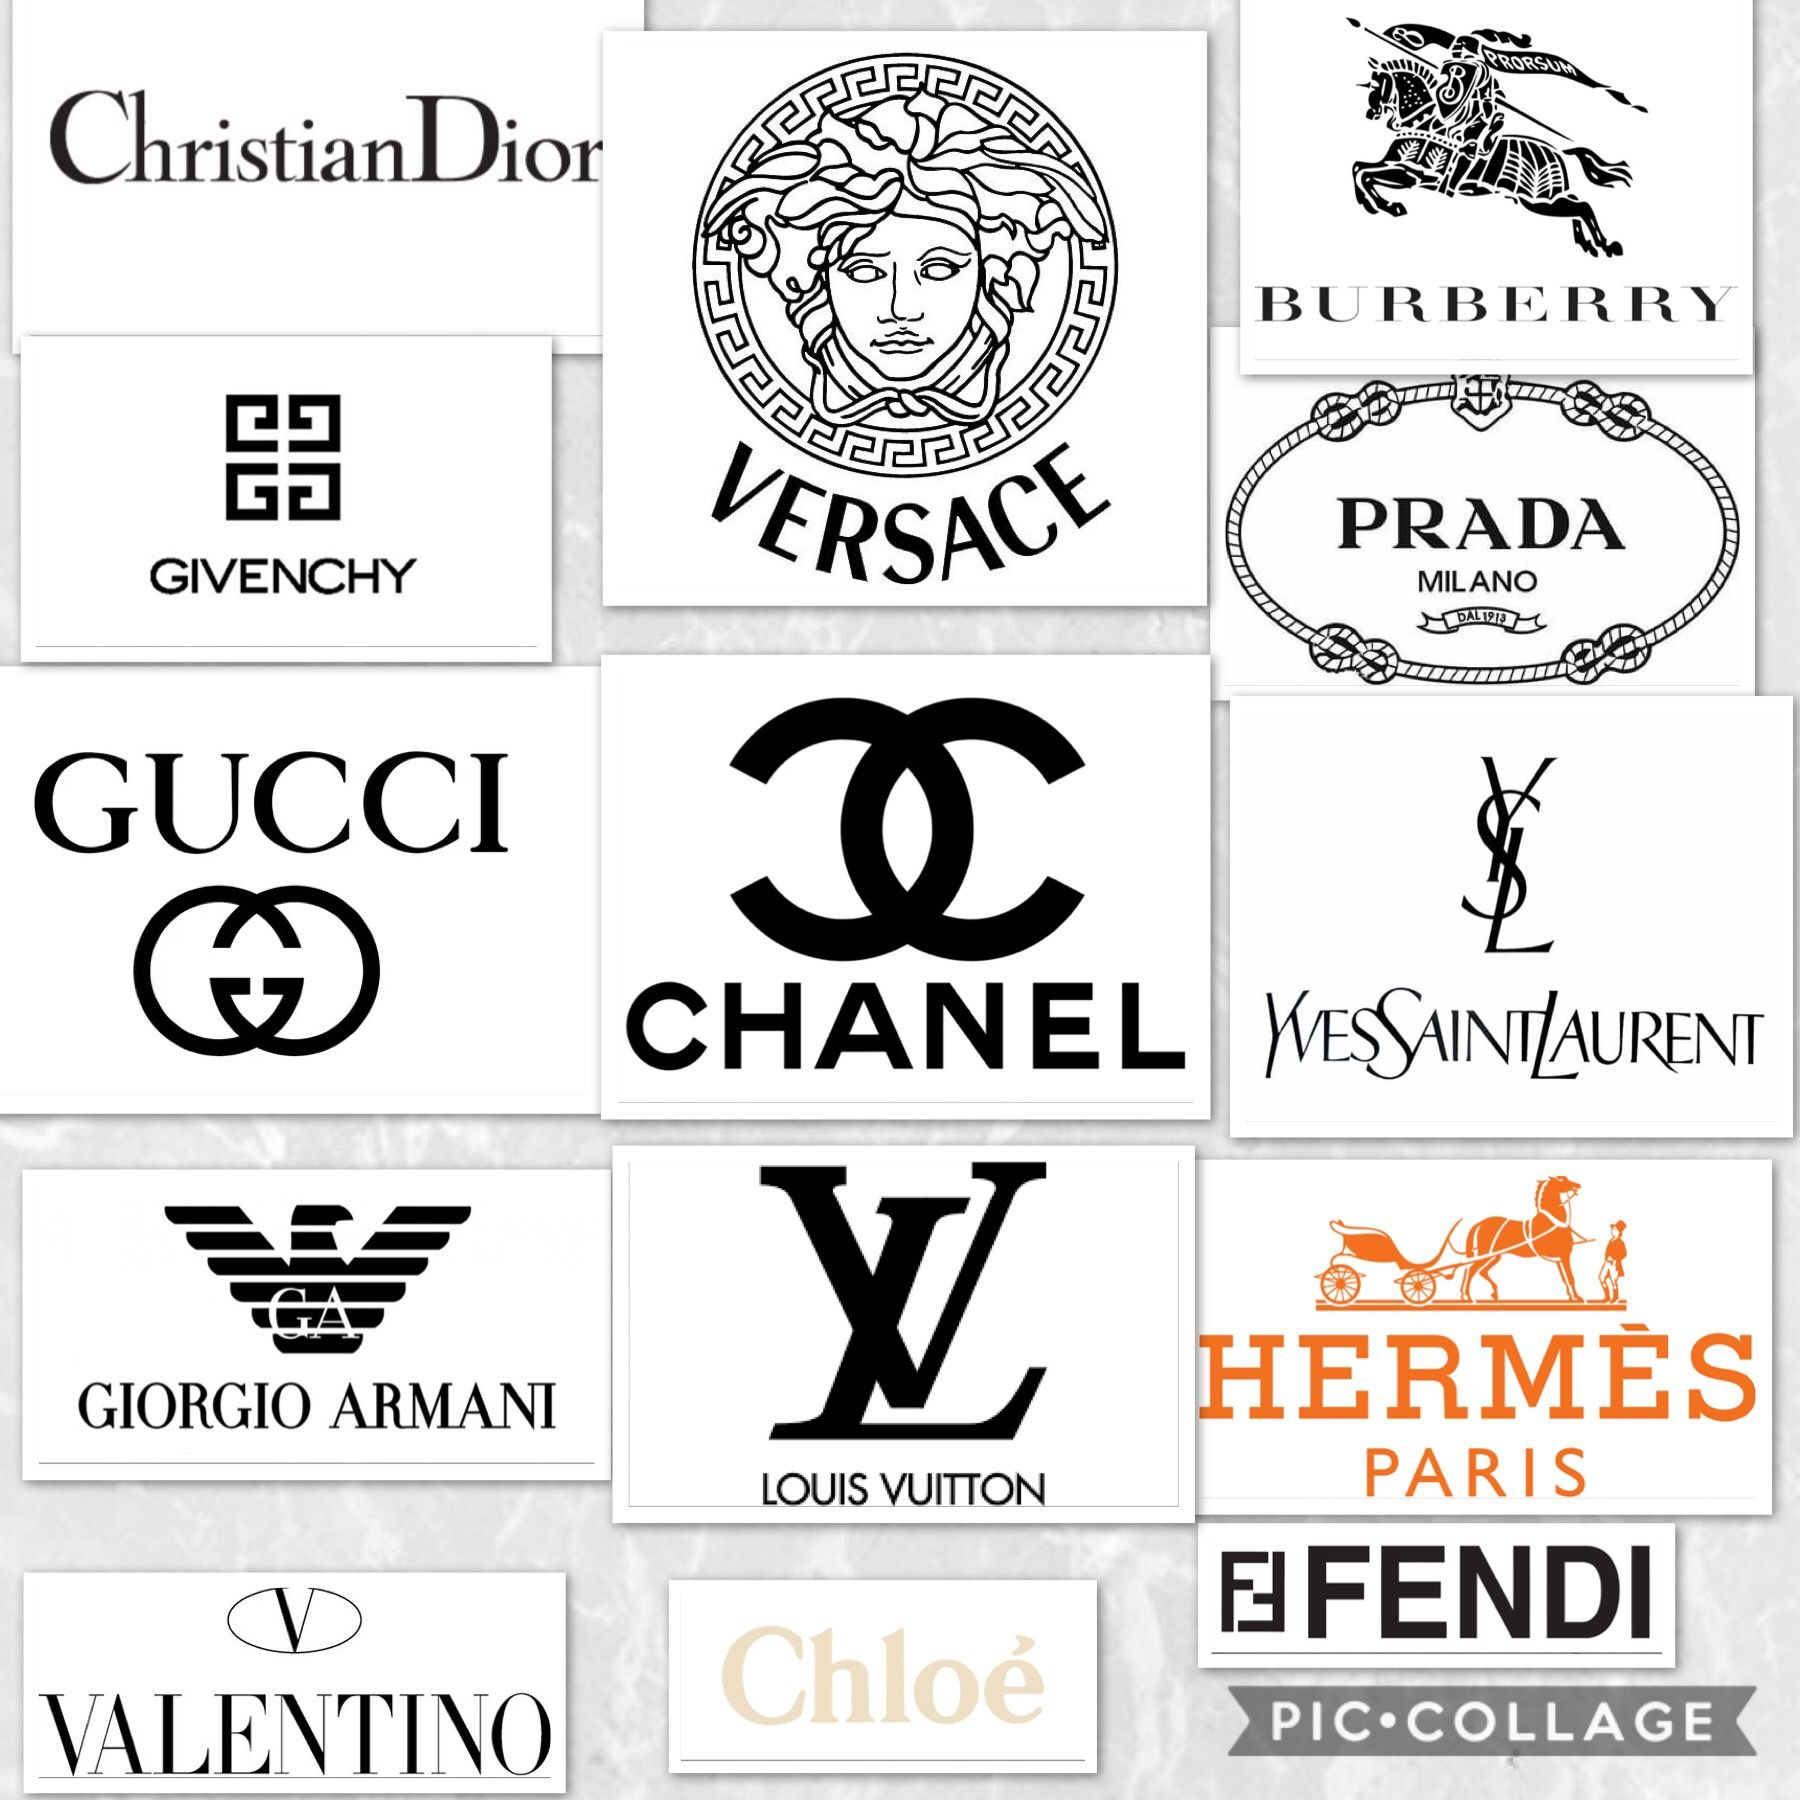 Top 15 fashion brands in the world